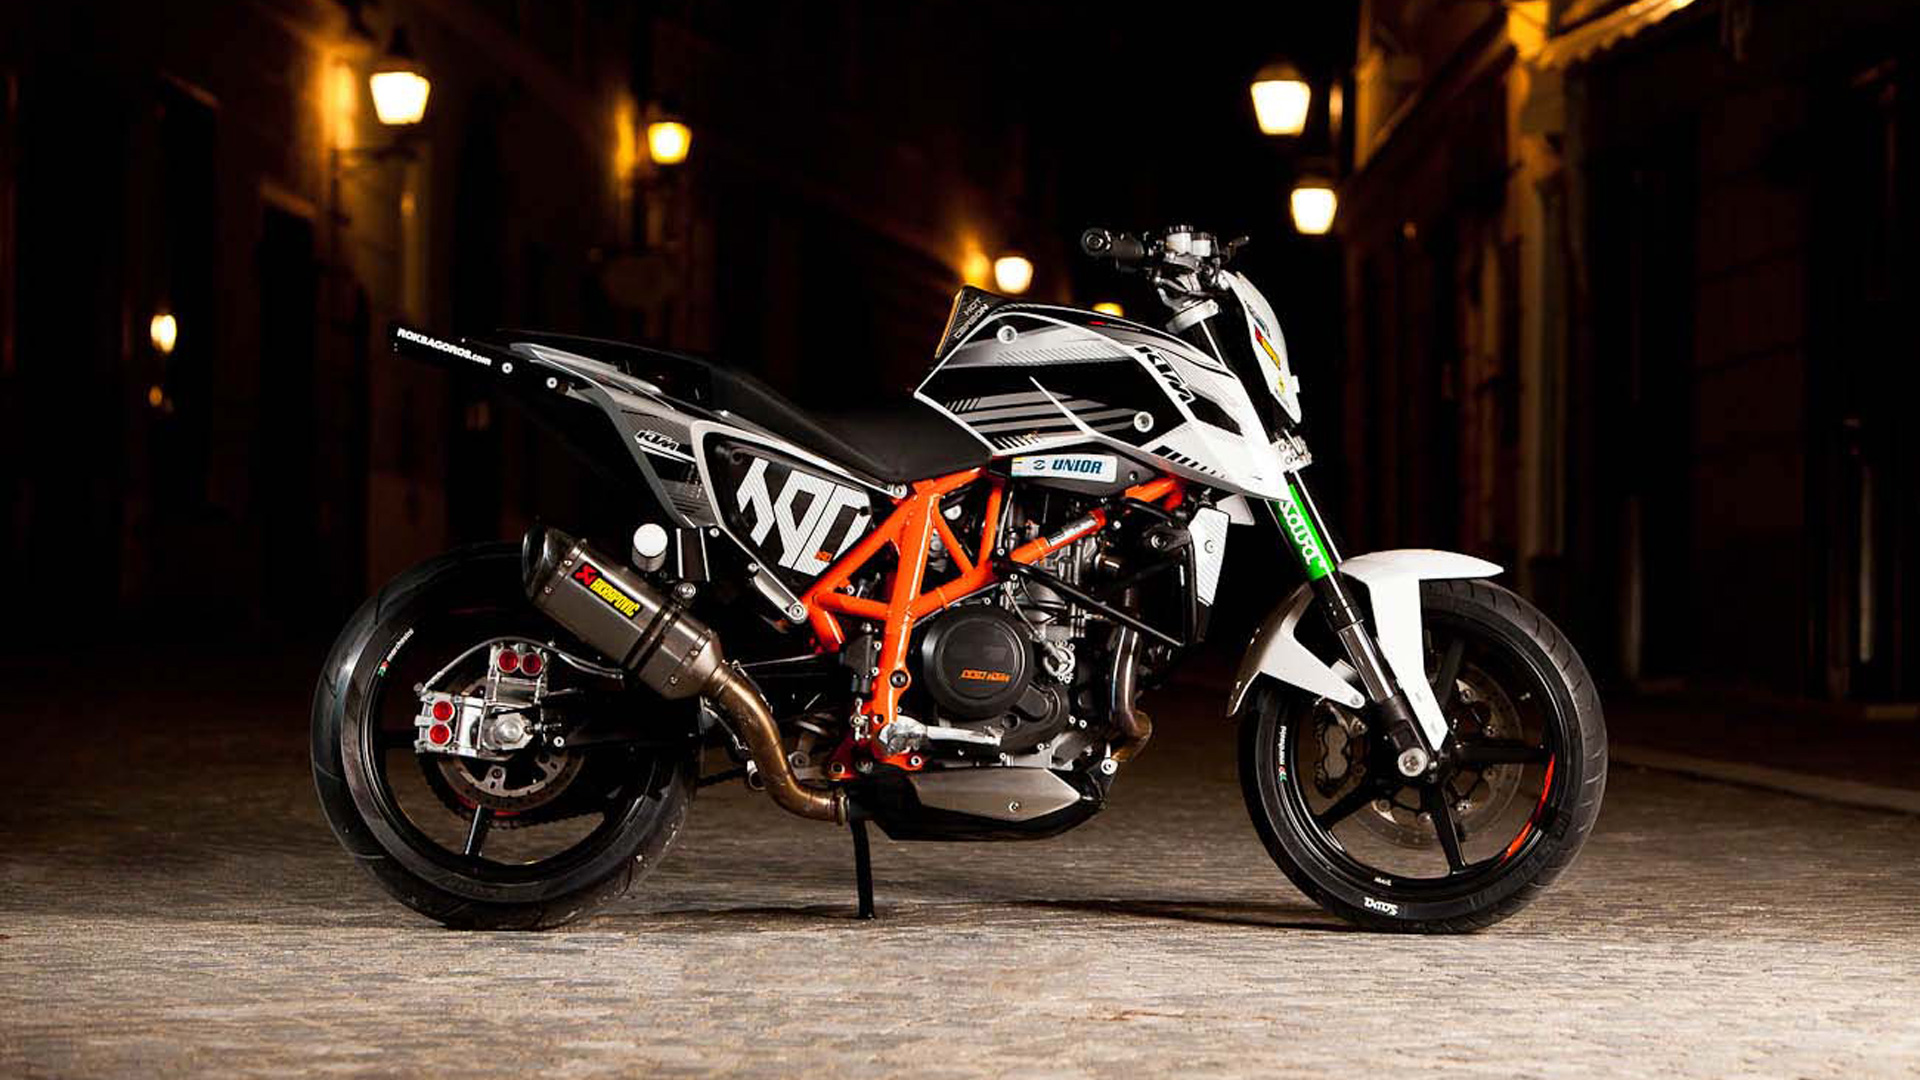 Ktm Duke Stunt Hd Wallpaper